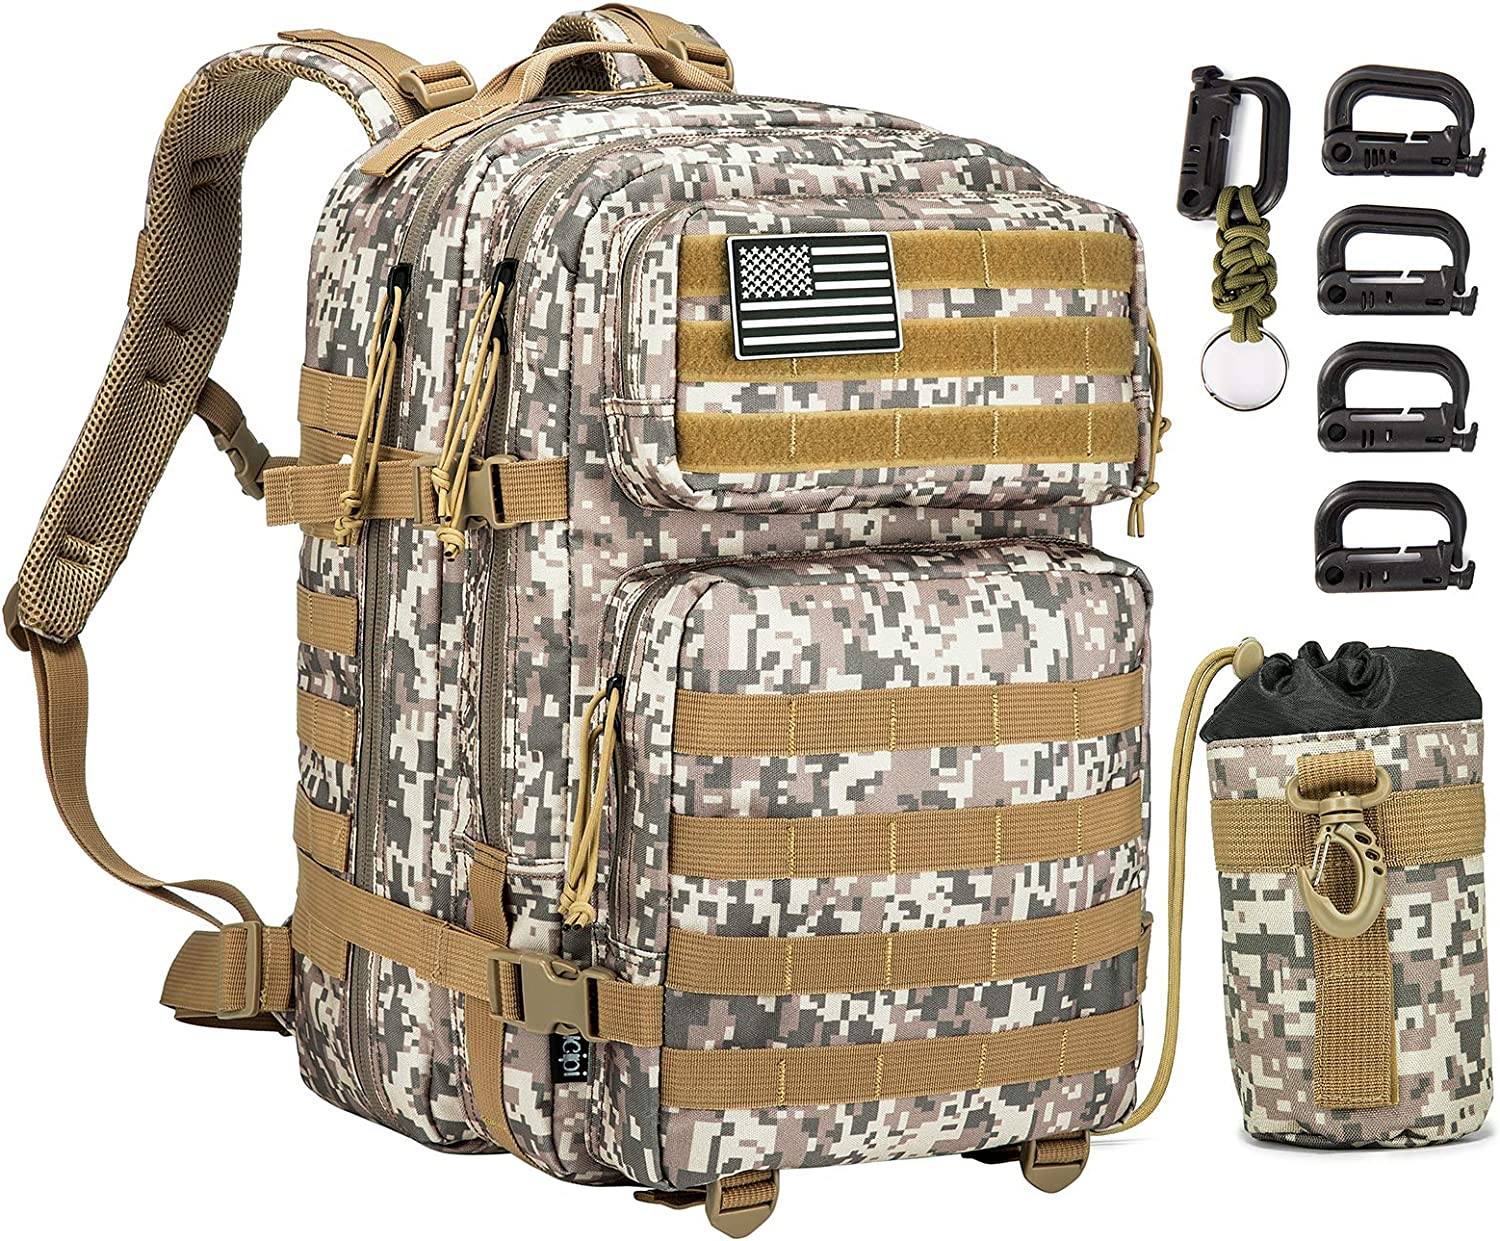 Military Tactical New popularity Backpack with Gifts Gun Holster Sucipi Large Day A 3